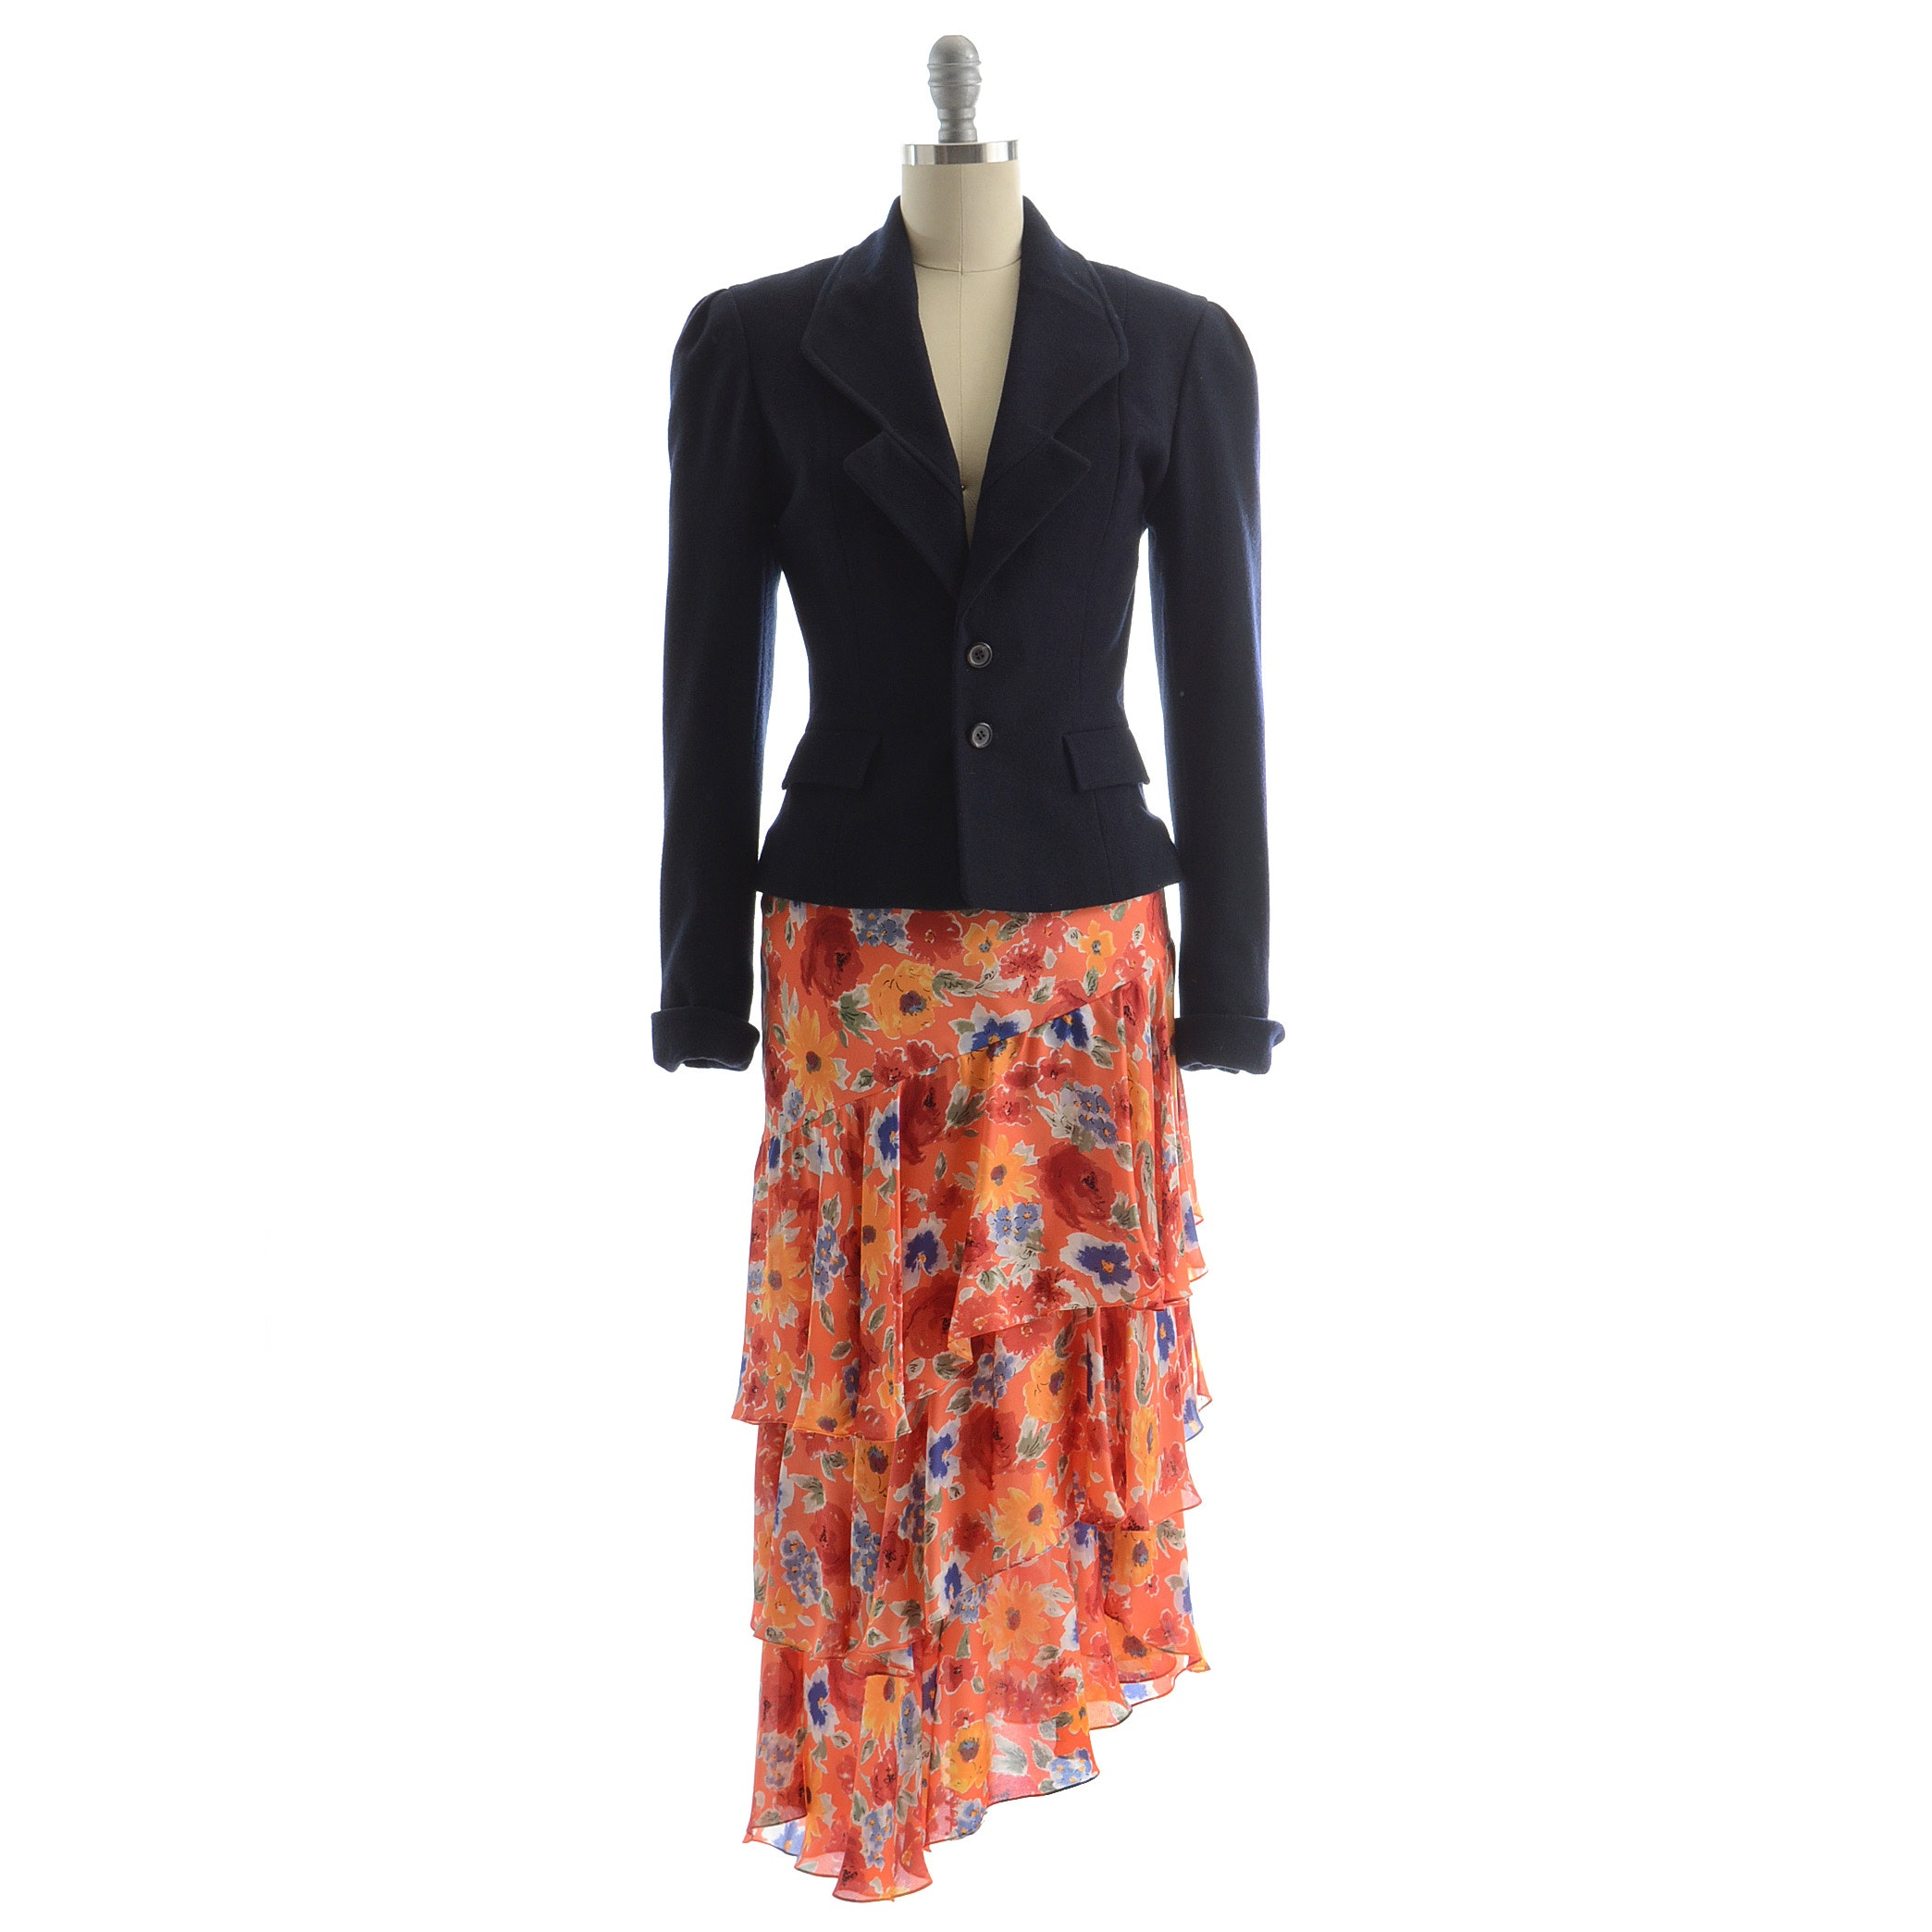 Ralph Lauren Navy Blue Blazer Paired with an Asymmetrical Multi-Color Silk Print Long Skirt with Tiered Ruffles